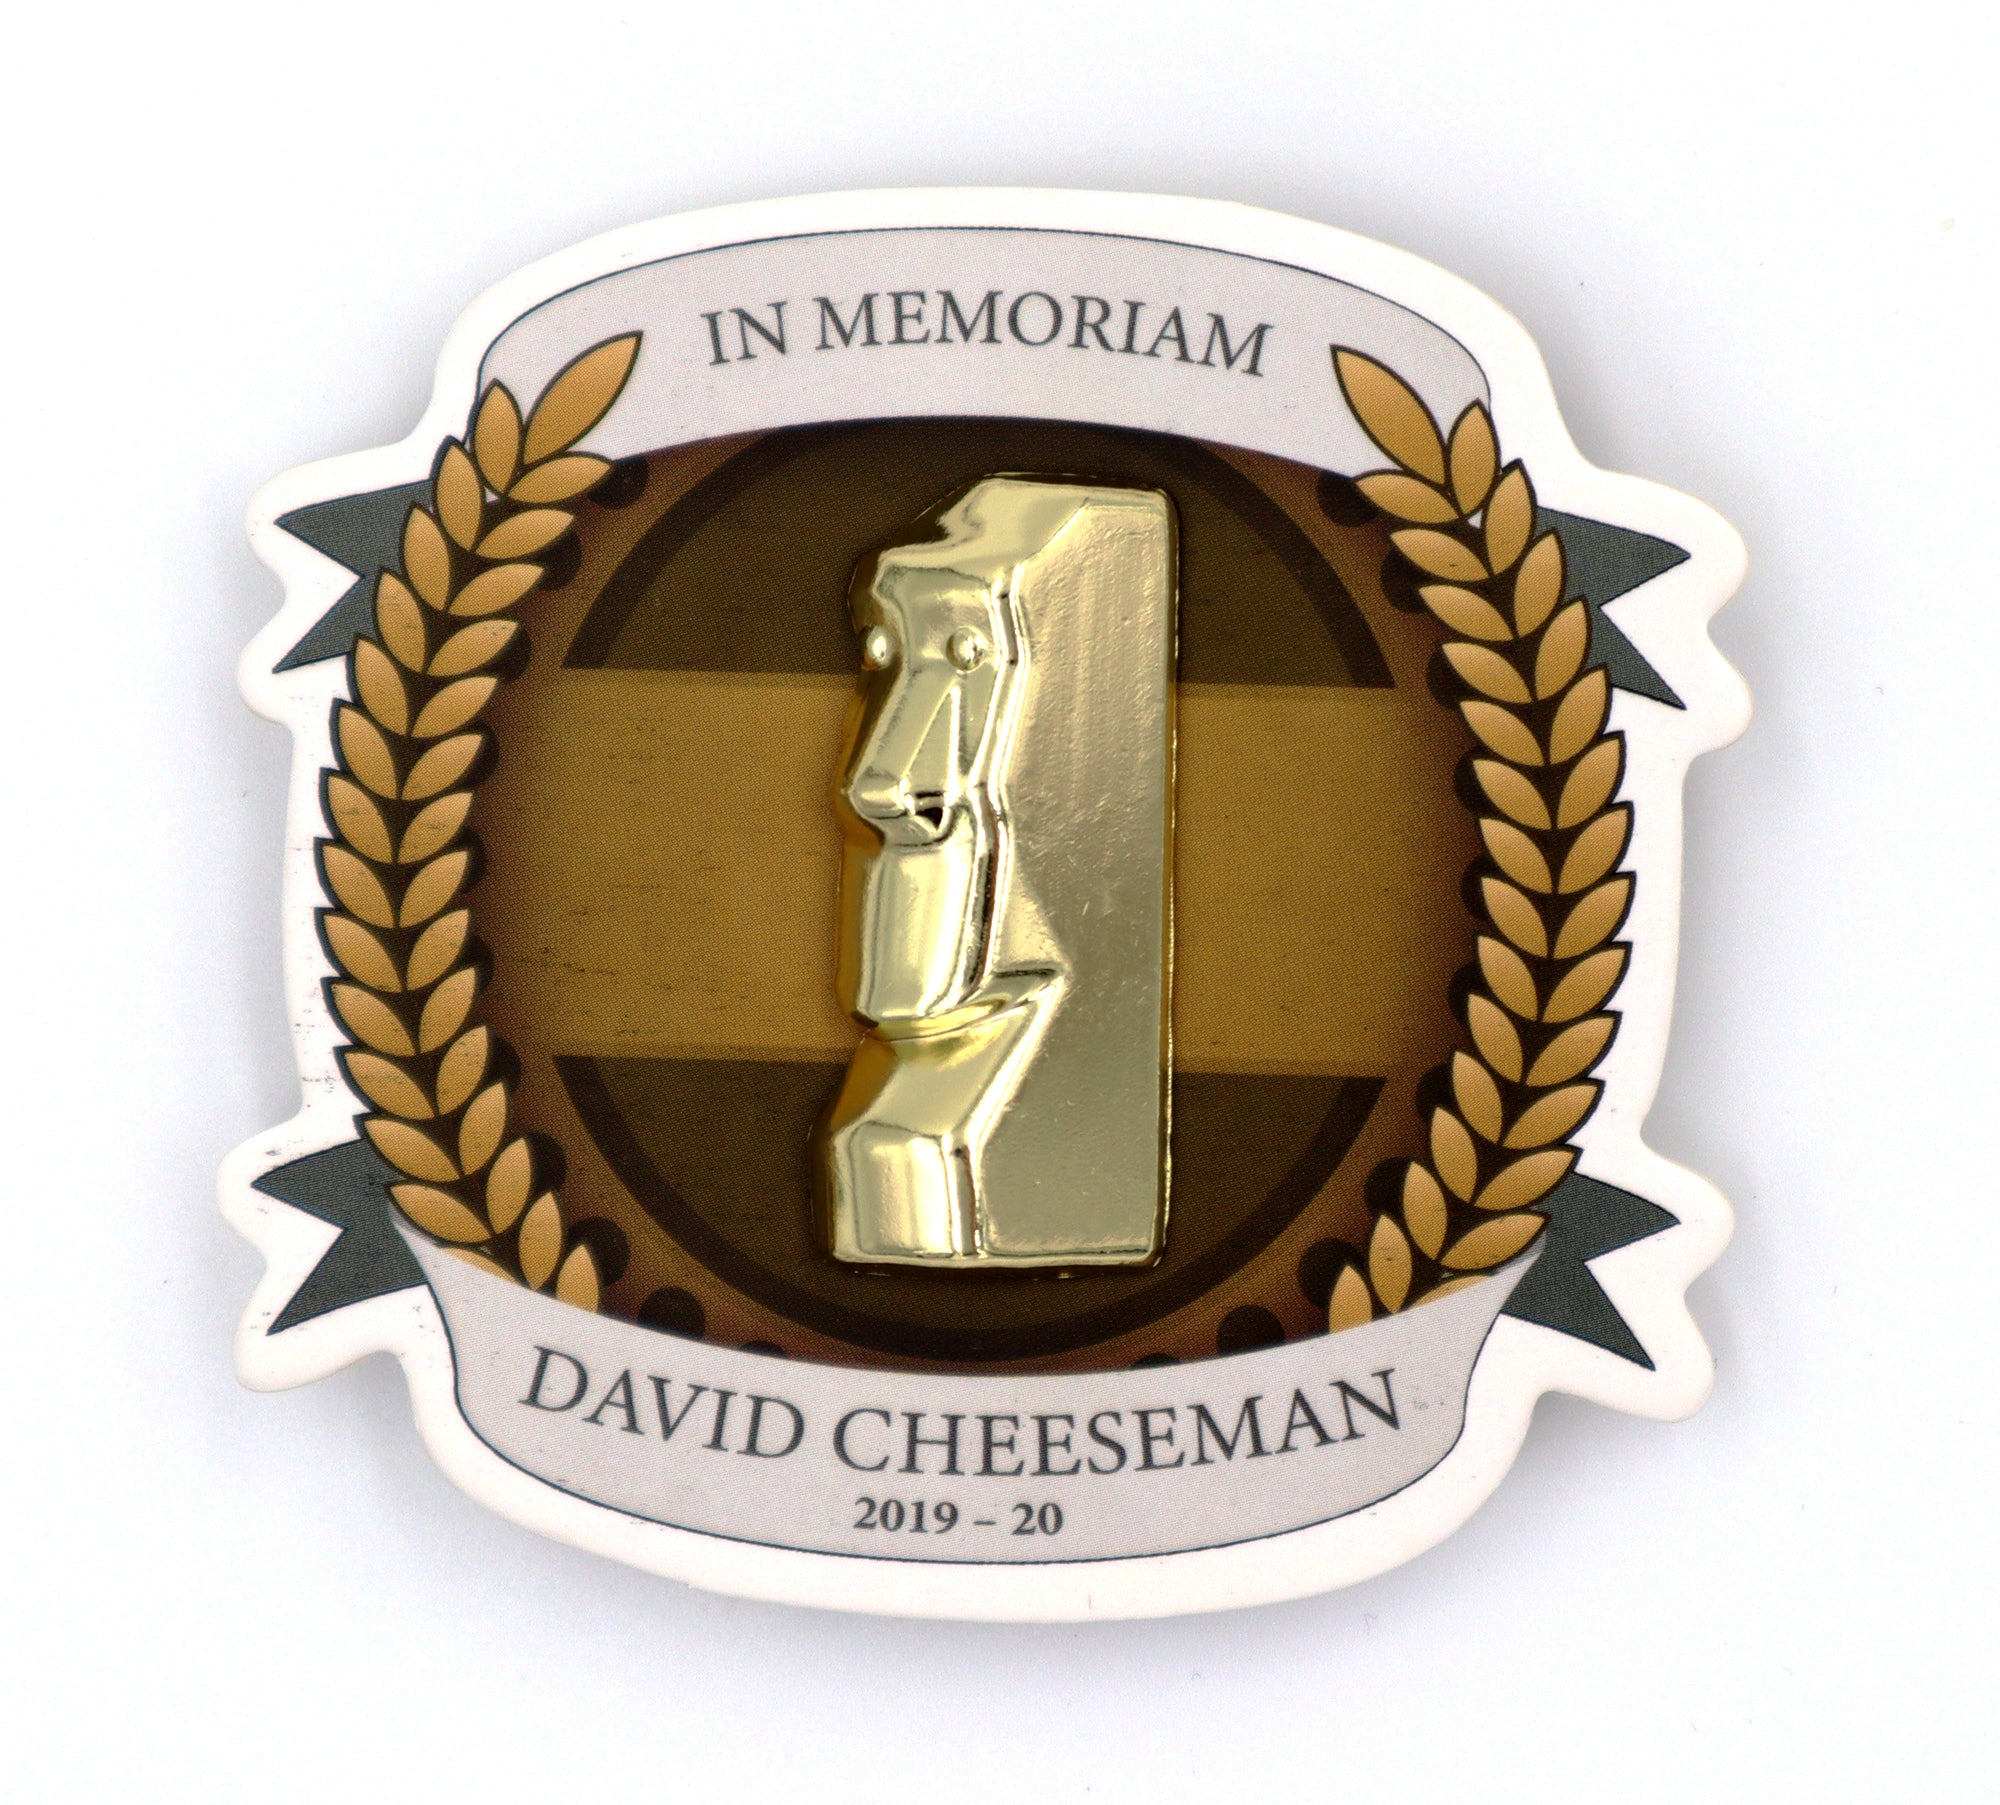 Cheeseman Memorial Pin - Limited Edition